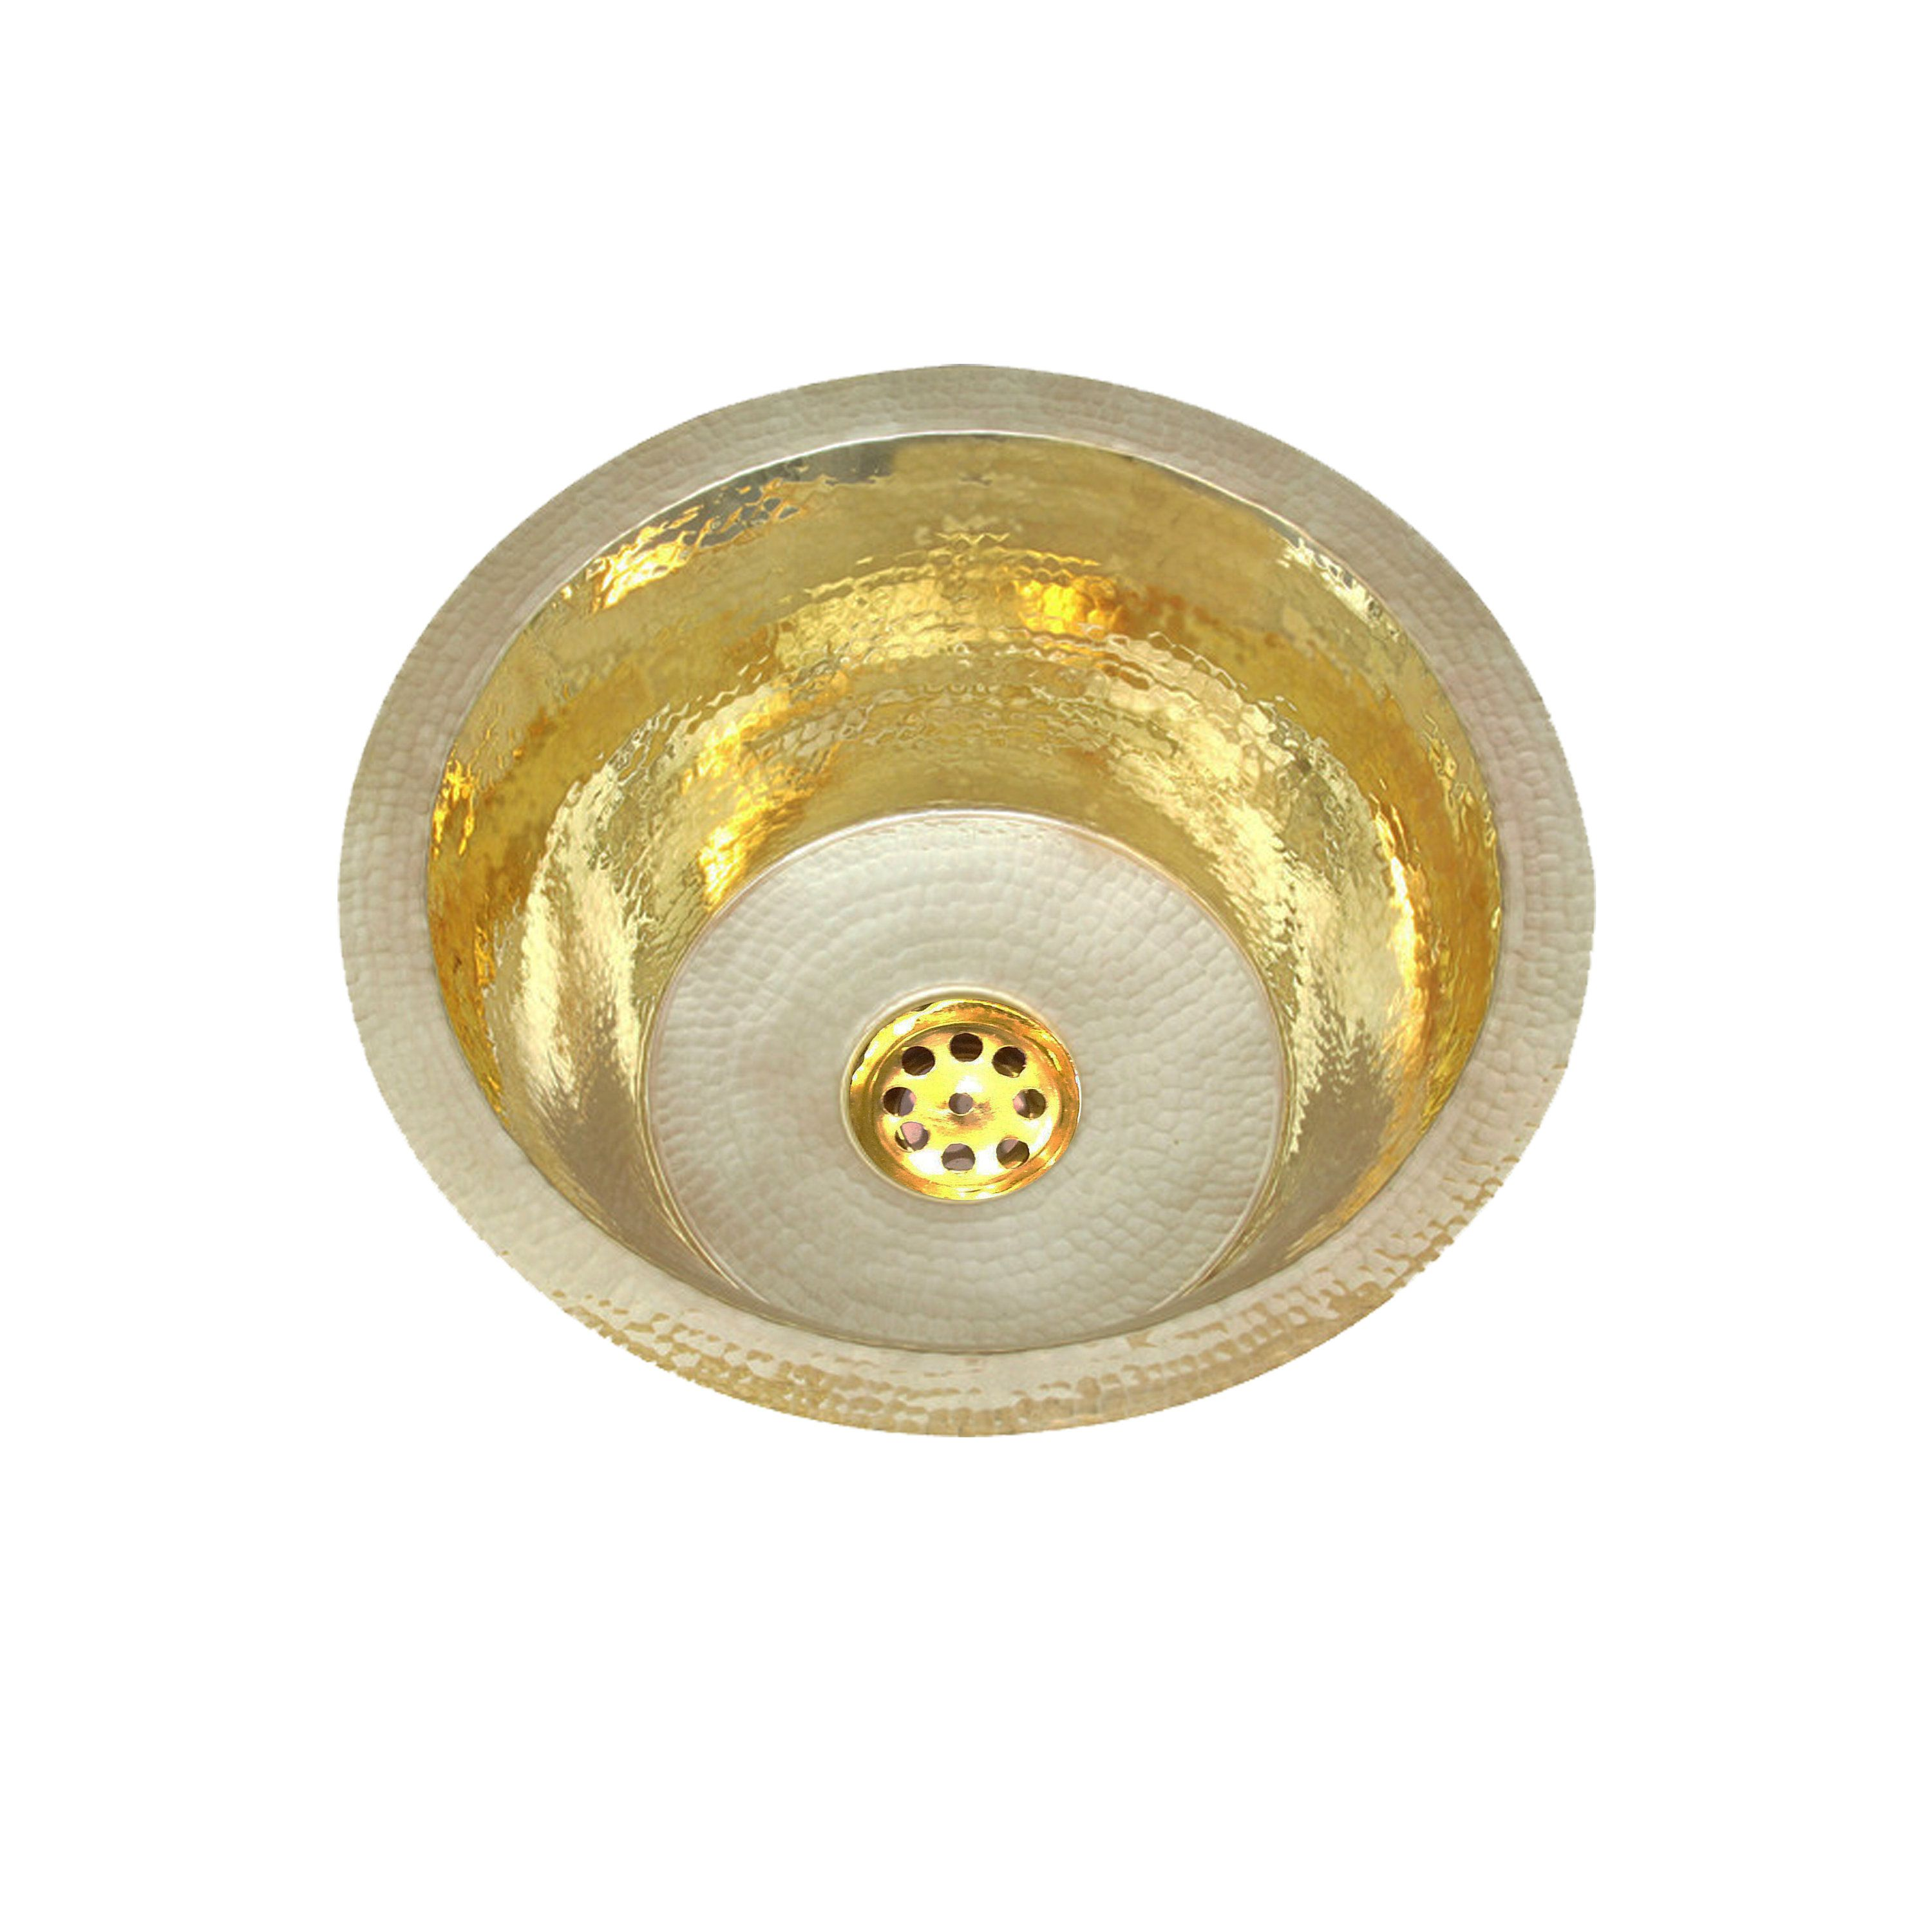 Moroccan Brass Bathroom Sink Wash Basin Toilet Lavatory Basin Brass Sink Bowl Bathroom Bathroom Vanities Brass Si Bathroom Sink Bowls Brass Sink Wash Basin